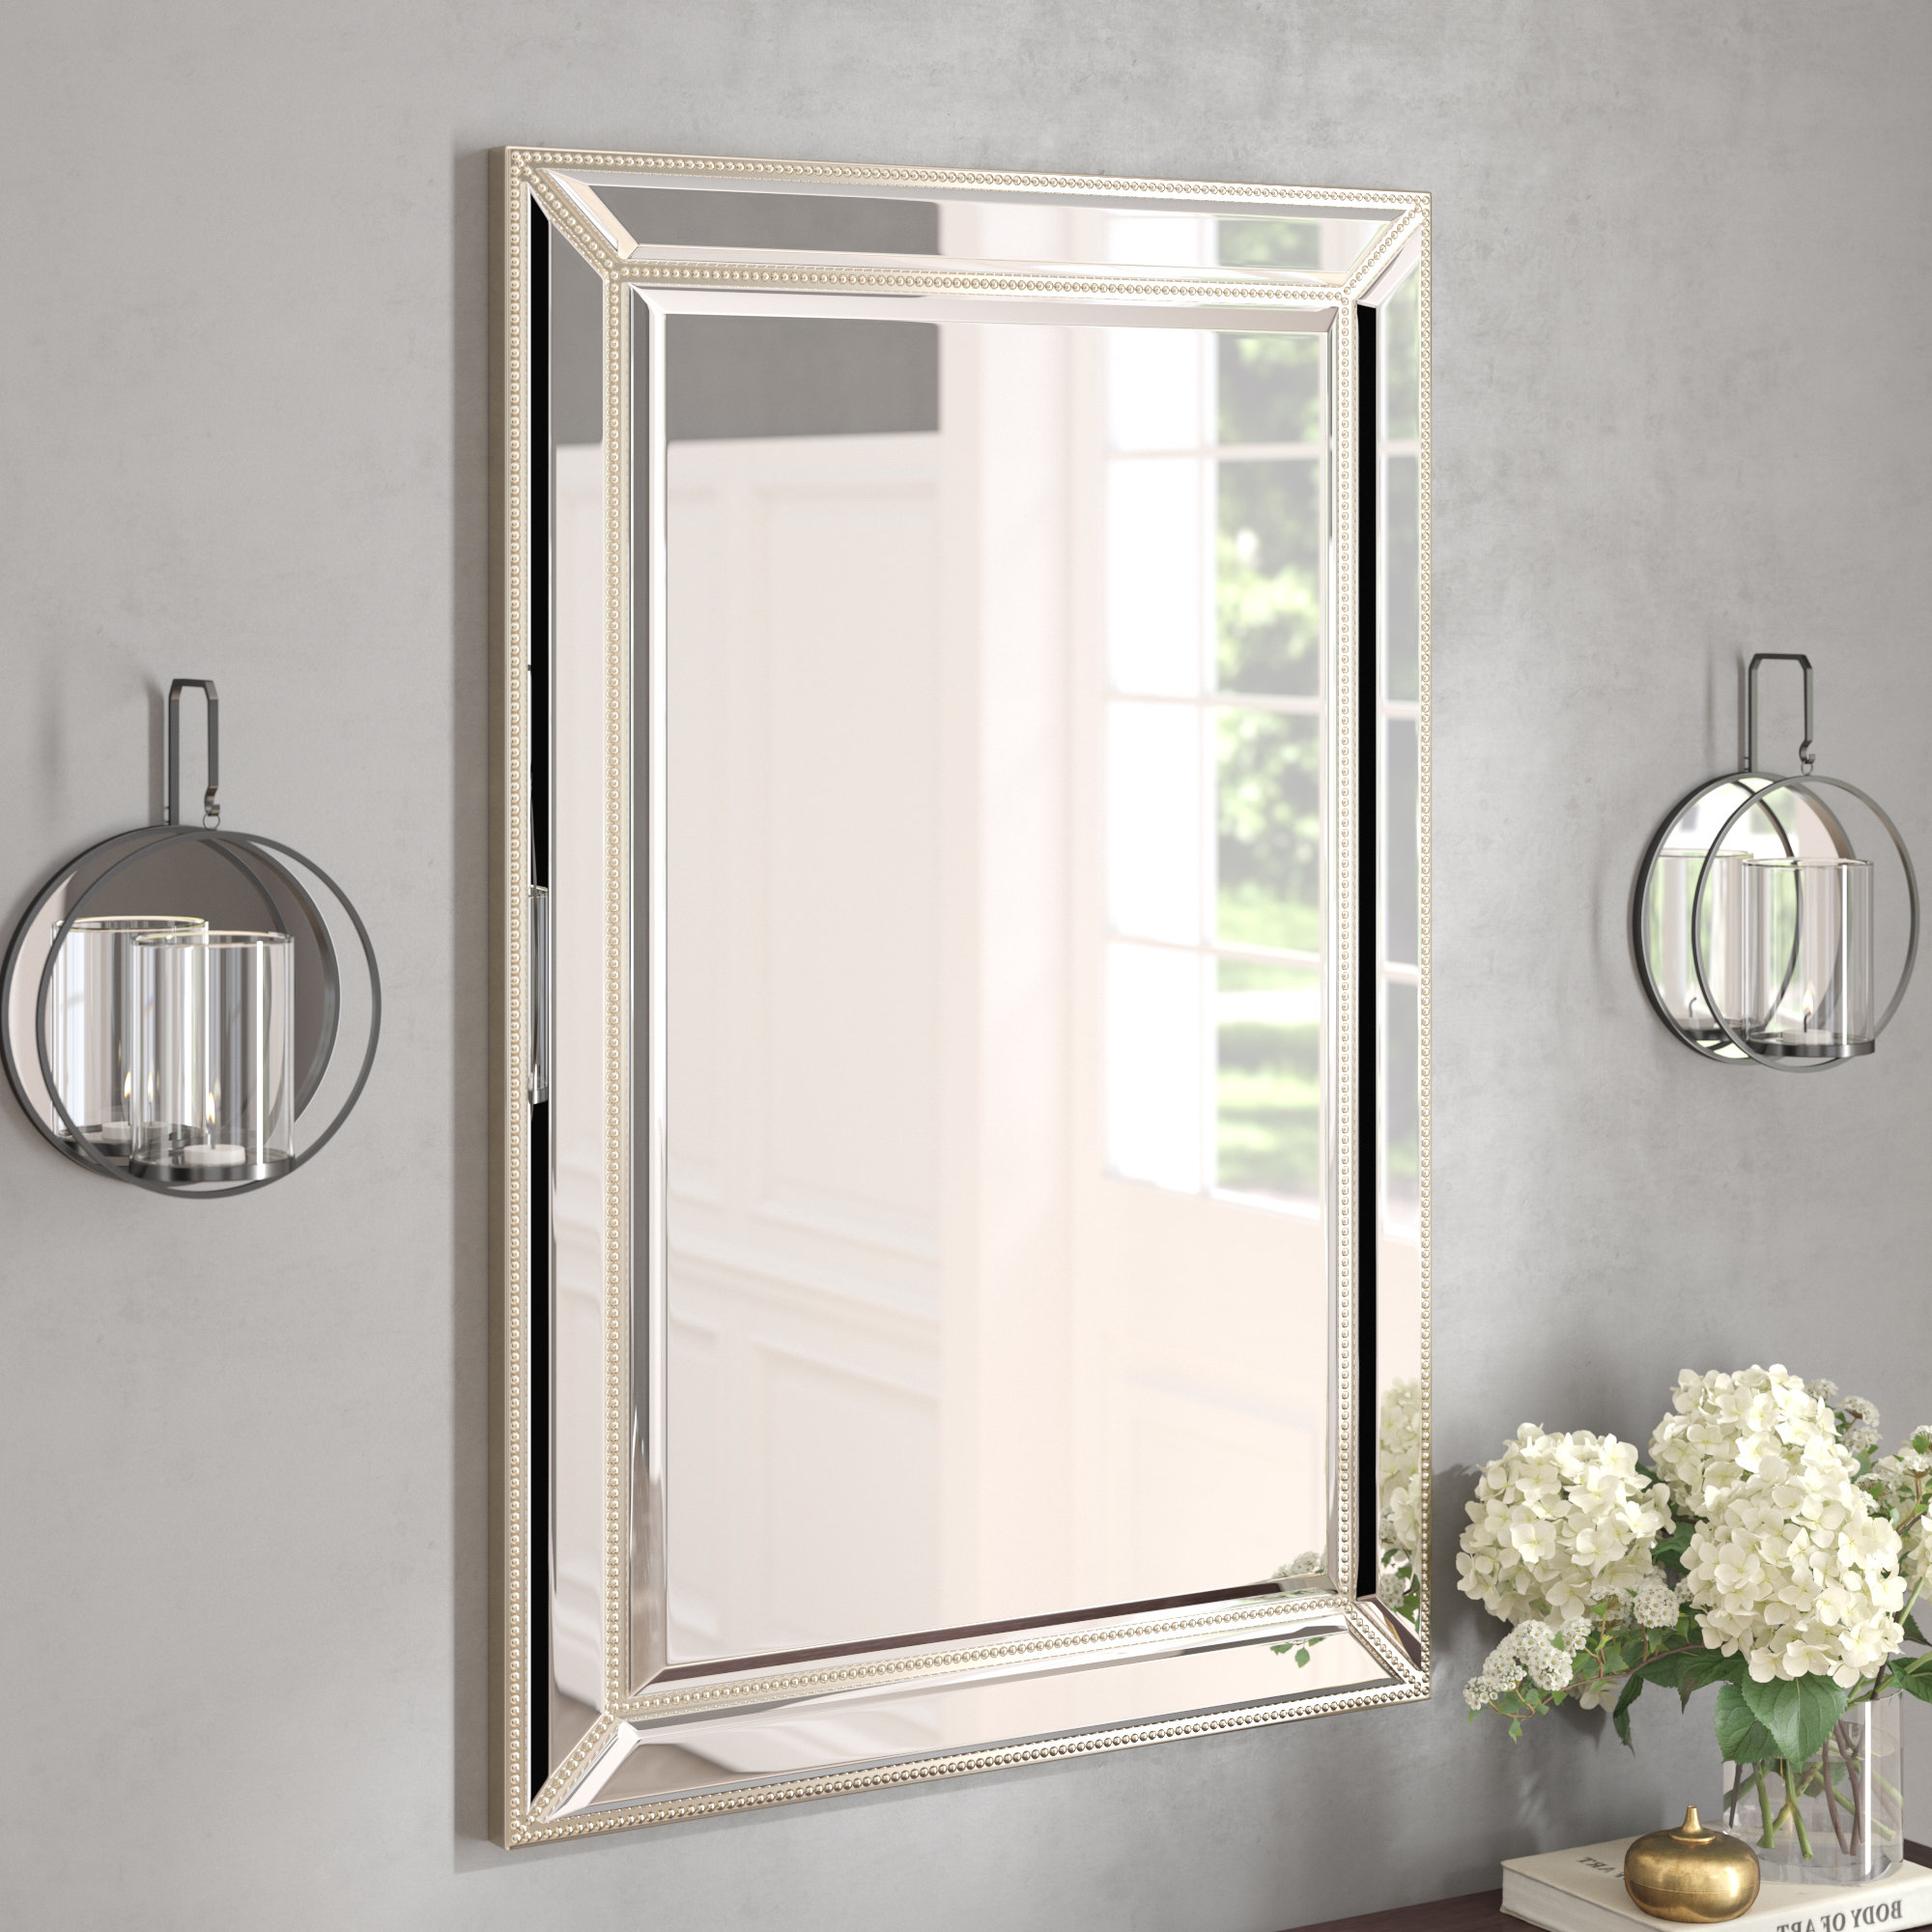 Wayfair Throughout Fashionable Vassallo Beaded Bronze Beveled Wall Mirrors (Gallery 11 of 20)